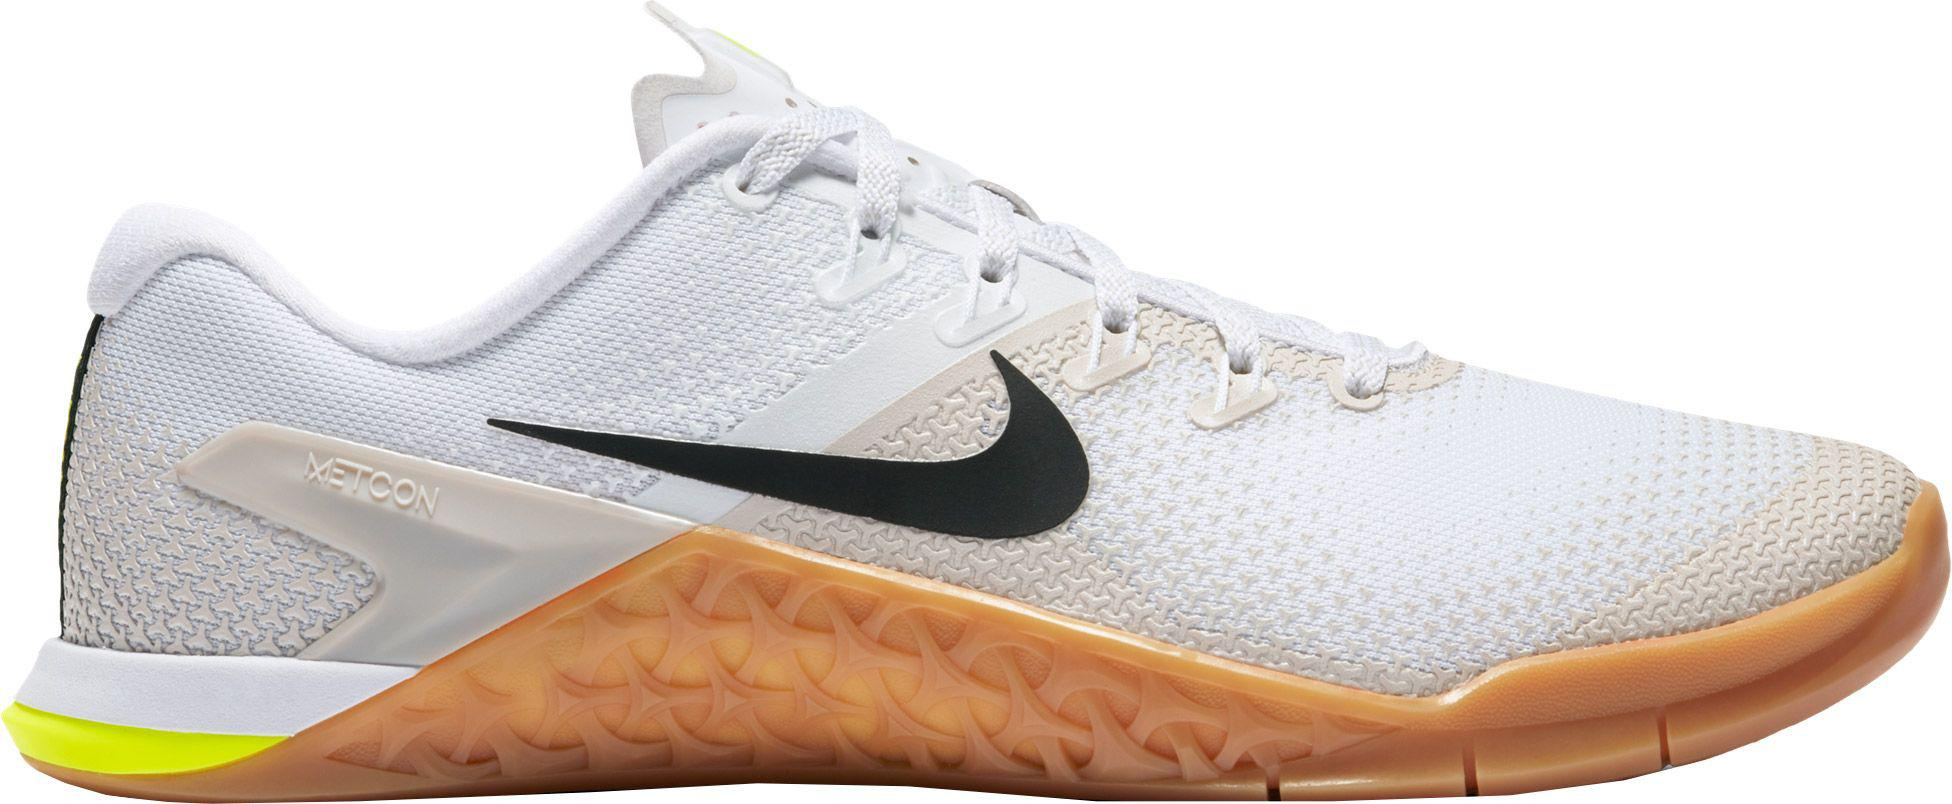 a86b4e70f7e24 Lyst - Nike Metcon 4 Training Shoes in White for Men